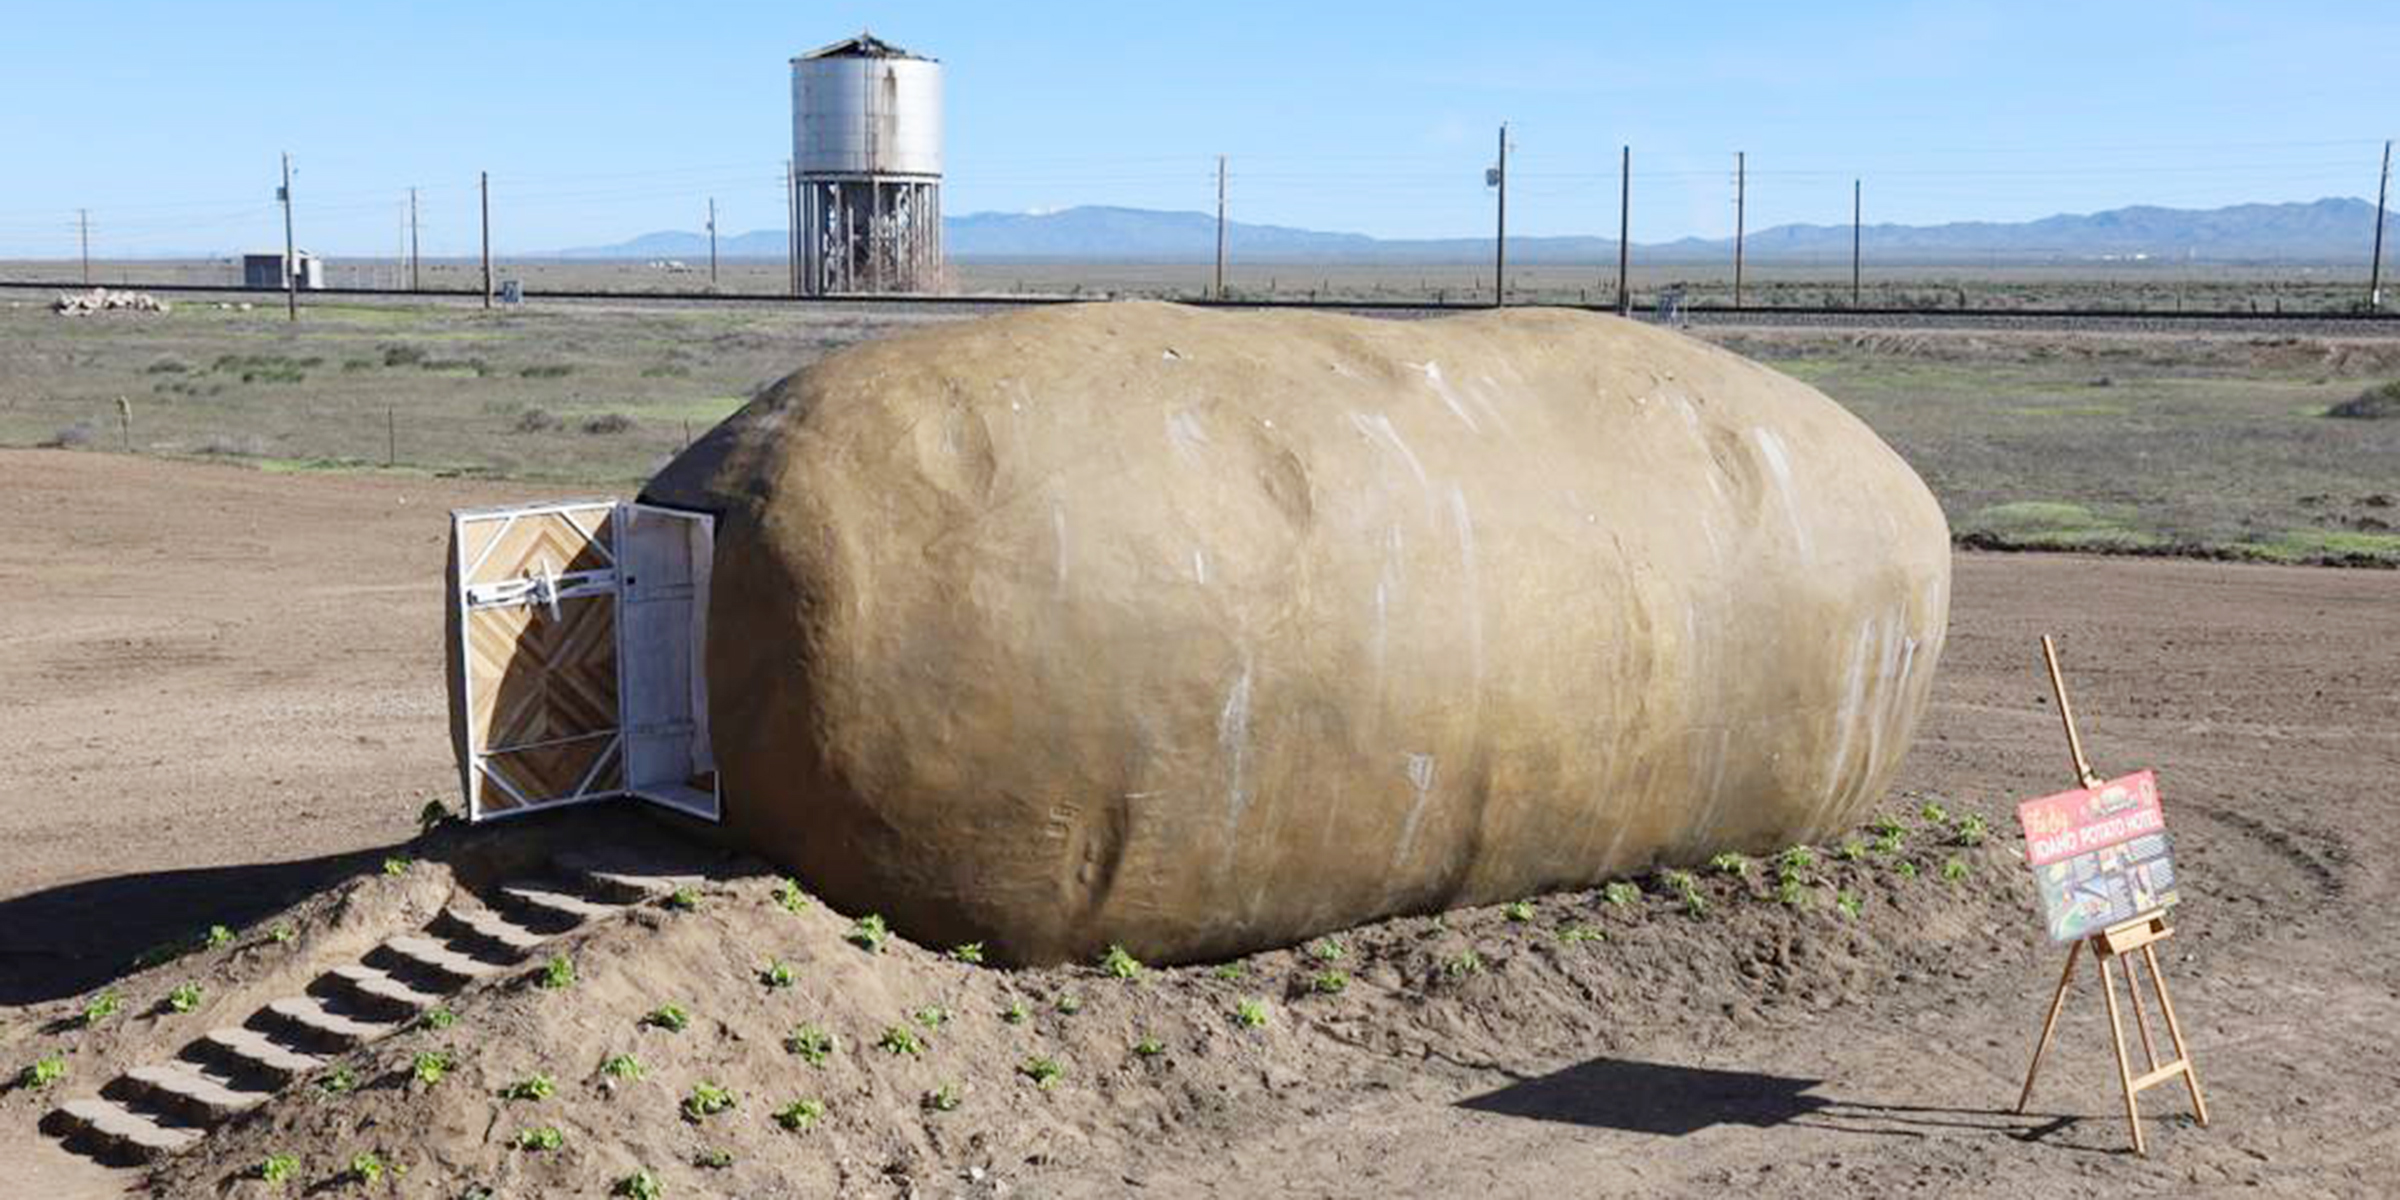 This giant potato is an Airbnb rental